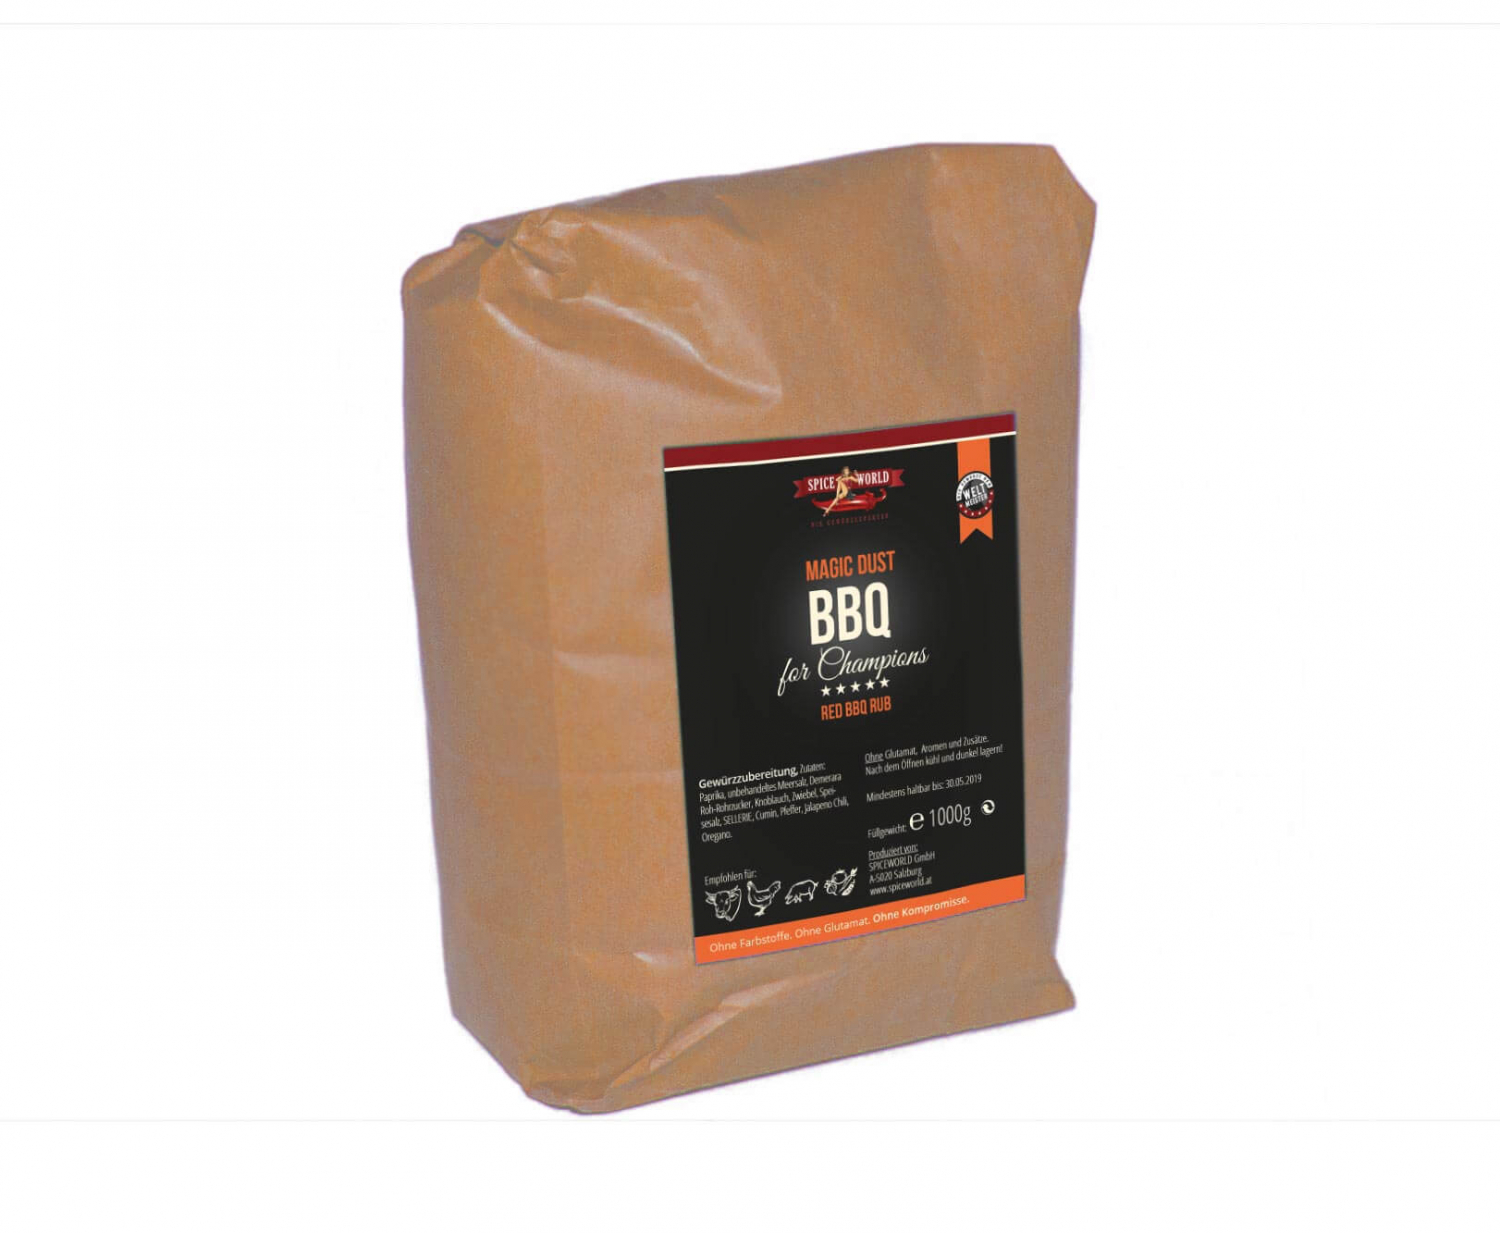 Barbecue for Champions - Magic Dust - Red BBQ Rub - 1000g Beutel 1kg Beutel